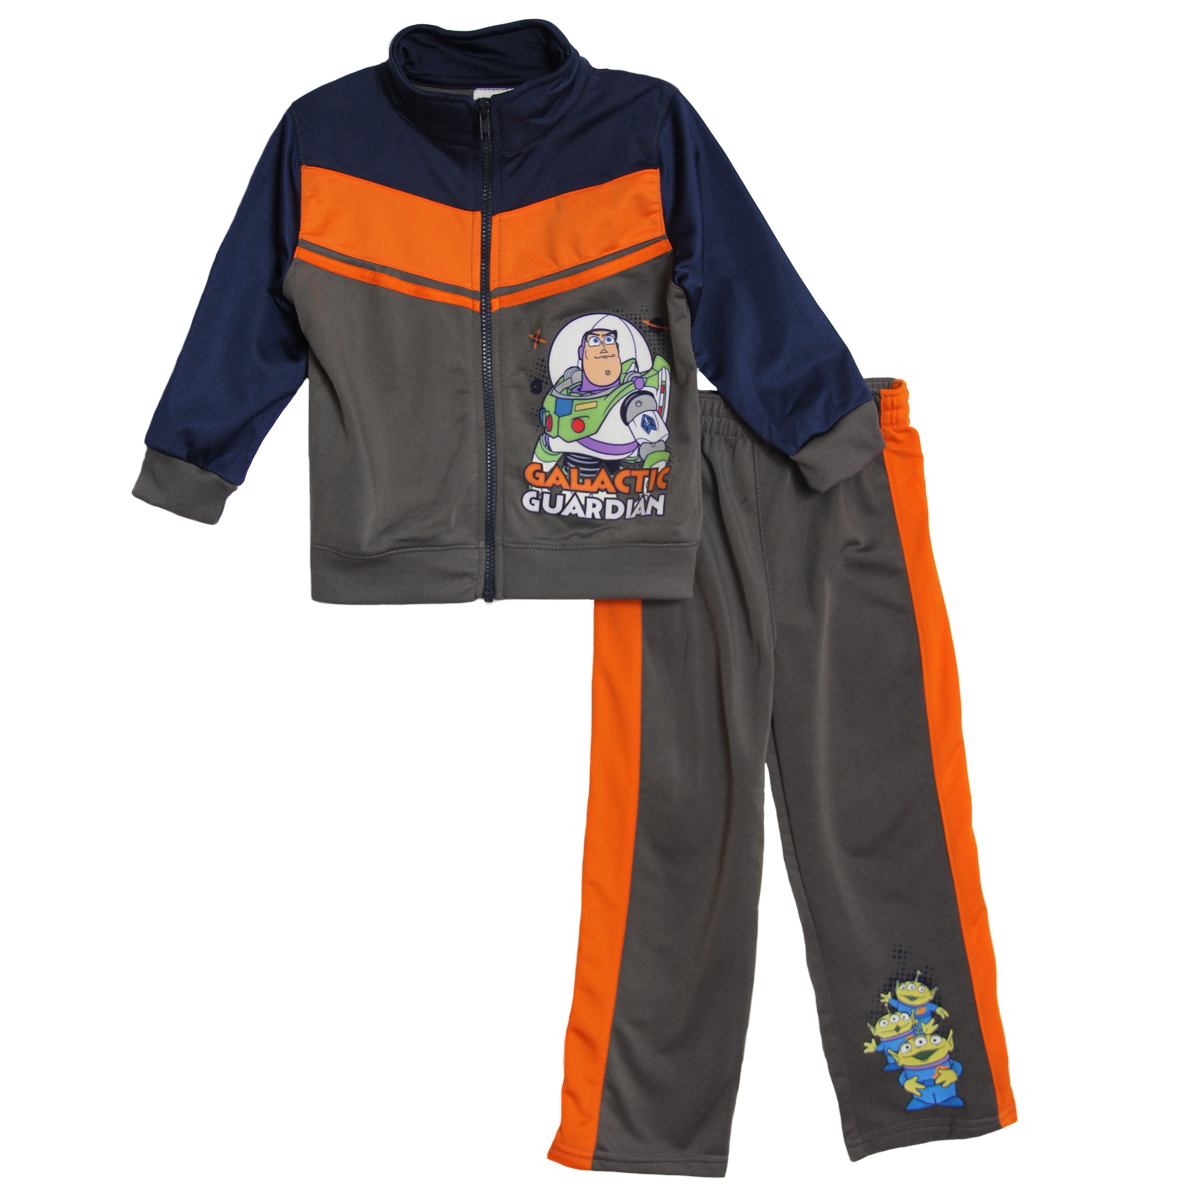 Disney Toy Story Toddler Boys 2 Piece Buzz Lightyear Jacket Pants Track Suit at Sears.com